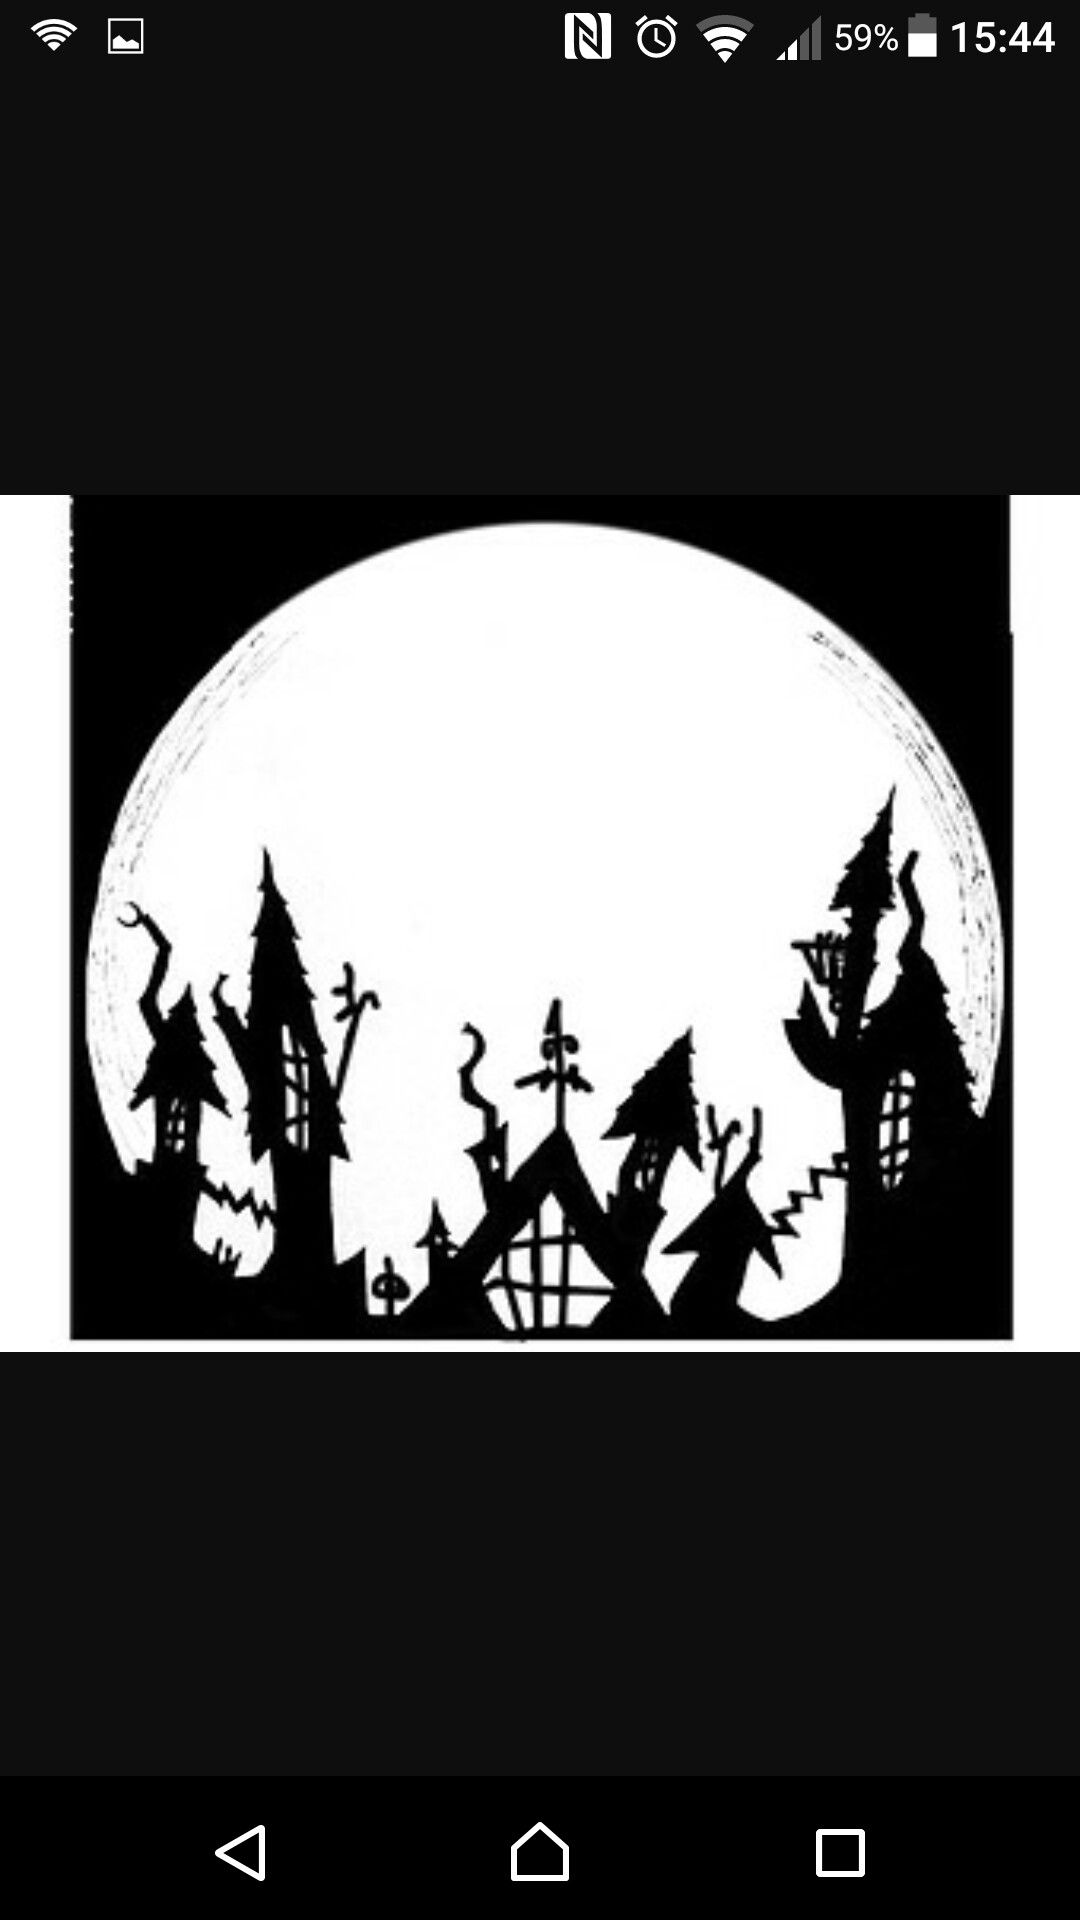 Pin by Stacey Groves on halloween | Pinterest